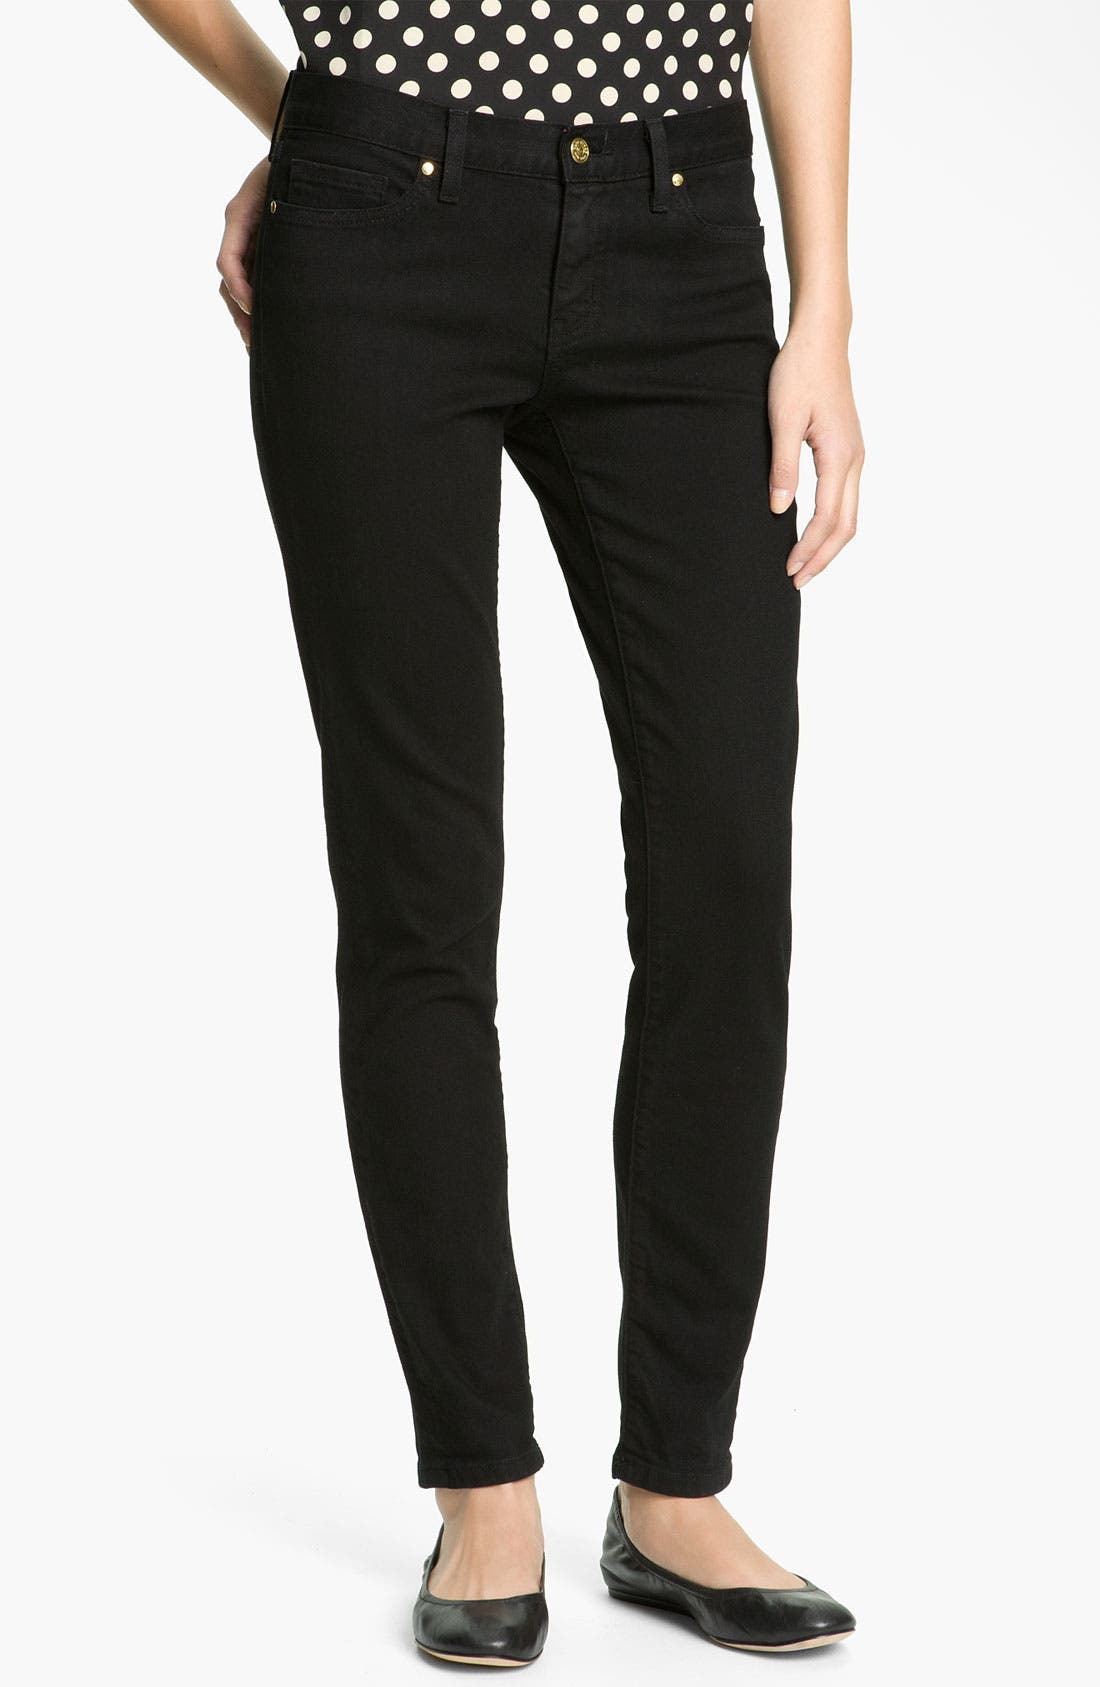 Alternate Image 1 Selected - kate spade new york 'broome street' skinny jeans